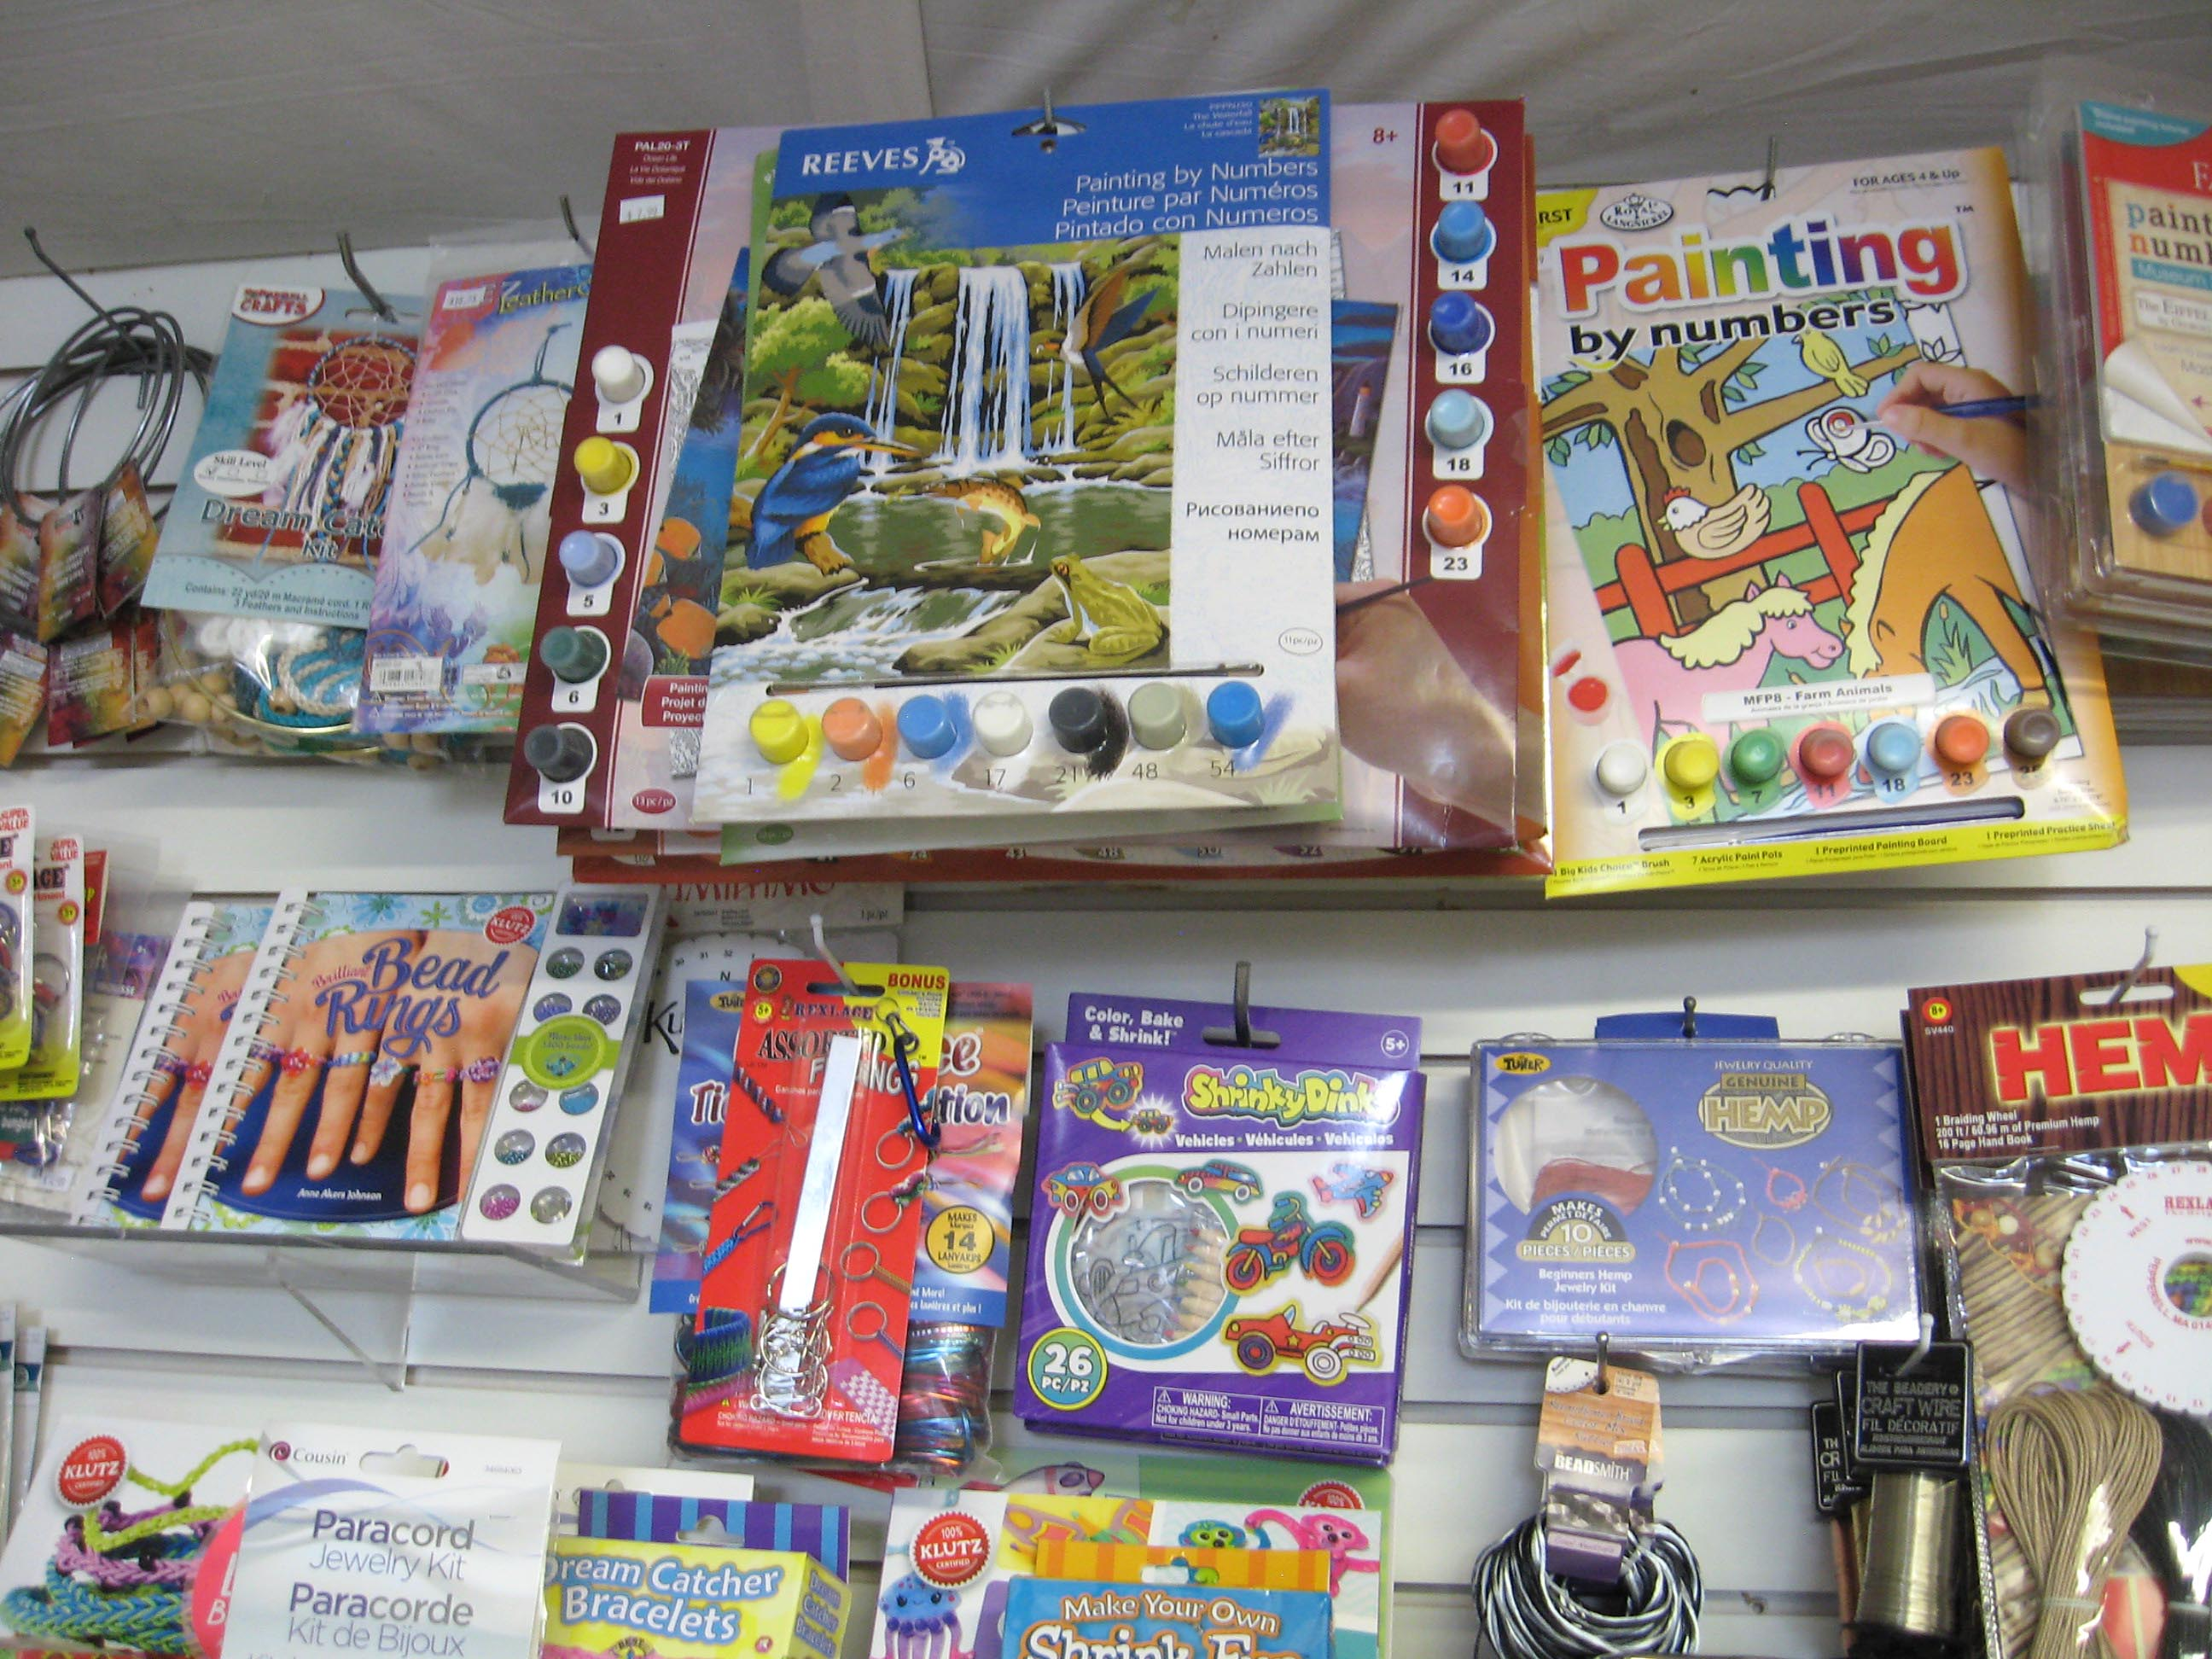 Arts and craft kits - We Offer Art And Craft Supplies To Artists Of All Levels Plus A Variety Of School Supplies And Creative Children S Gifts We Stock Supplies From A Variety